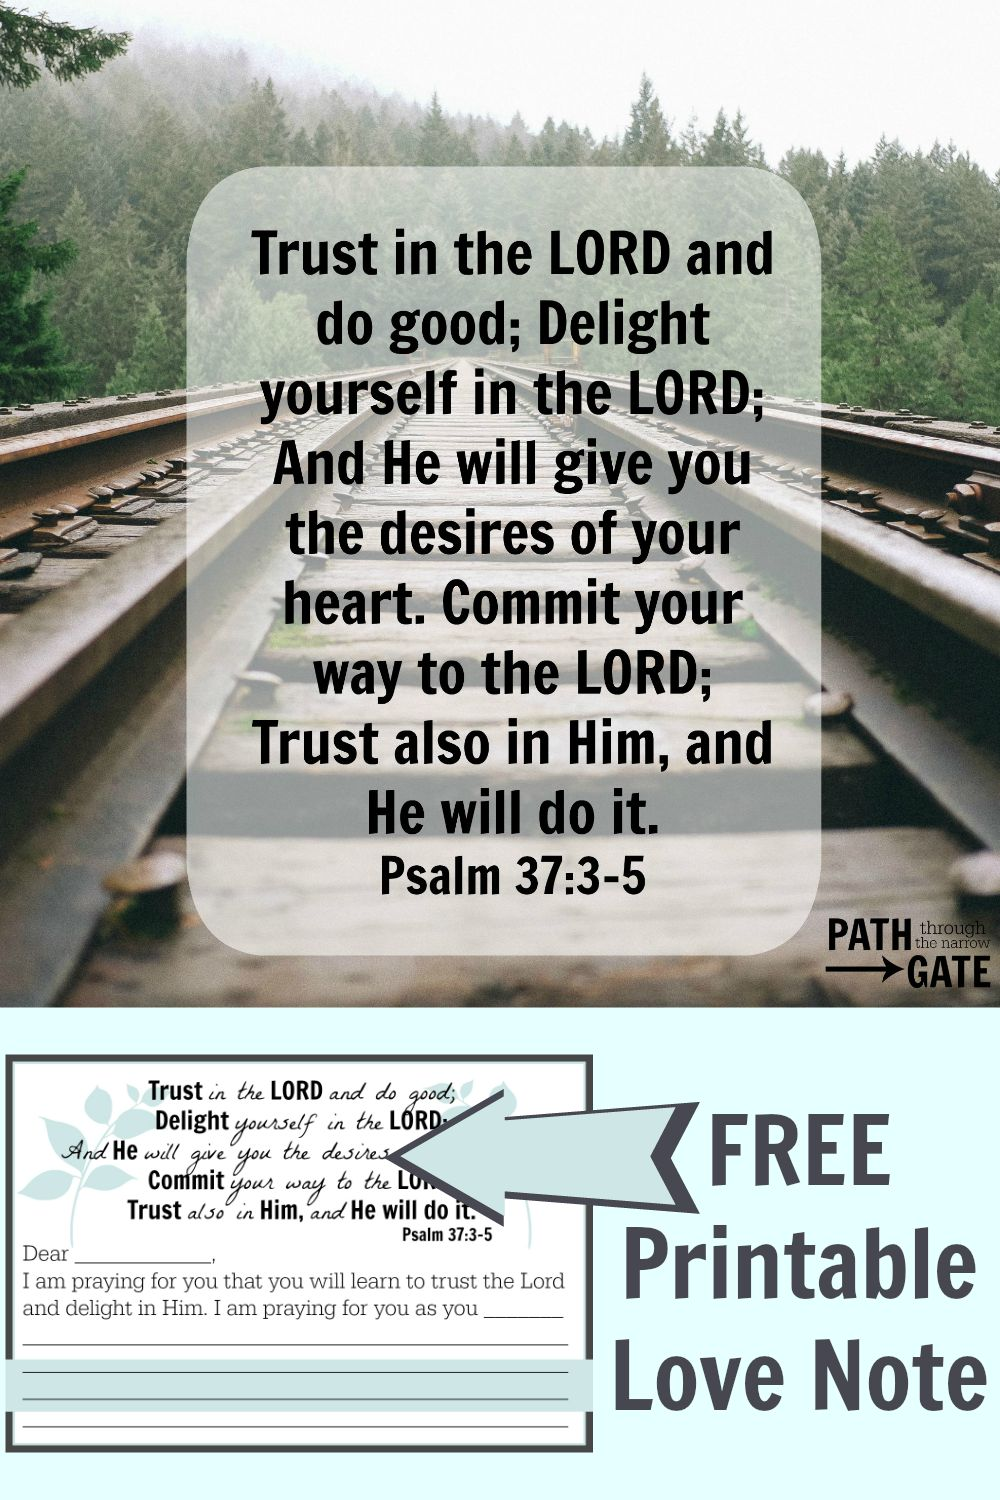 Do you know of someone who could use some encouragement from Psalm 37:3-5? Send them this personalized love note today!